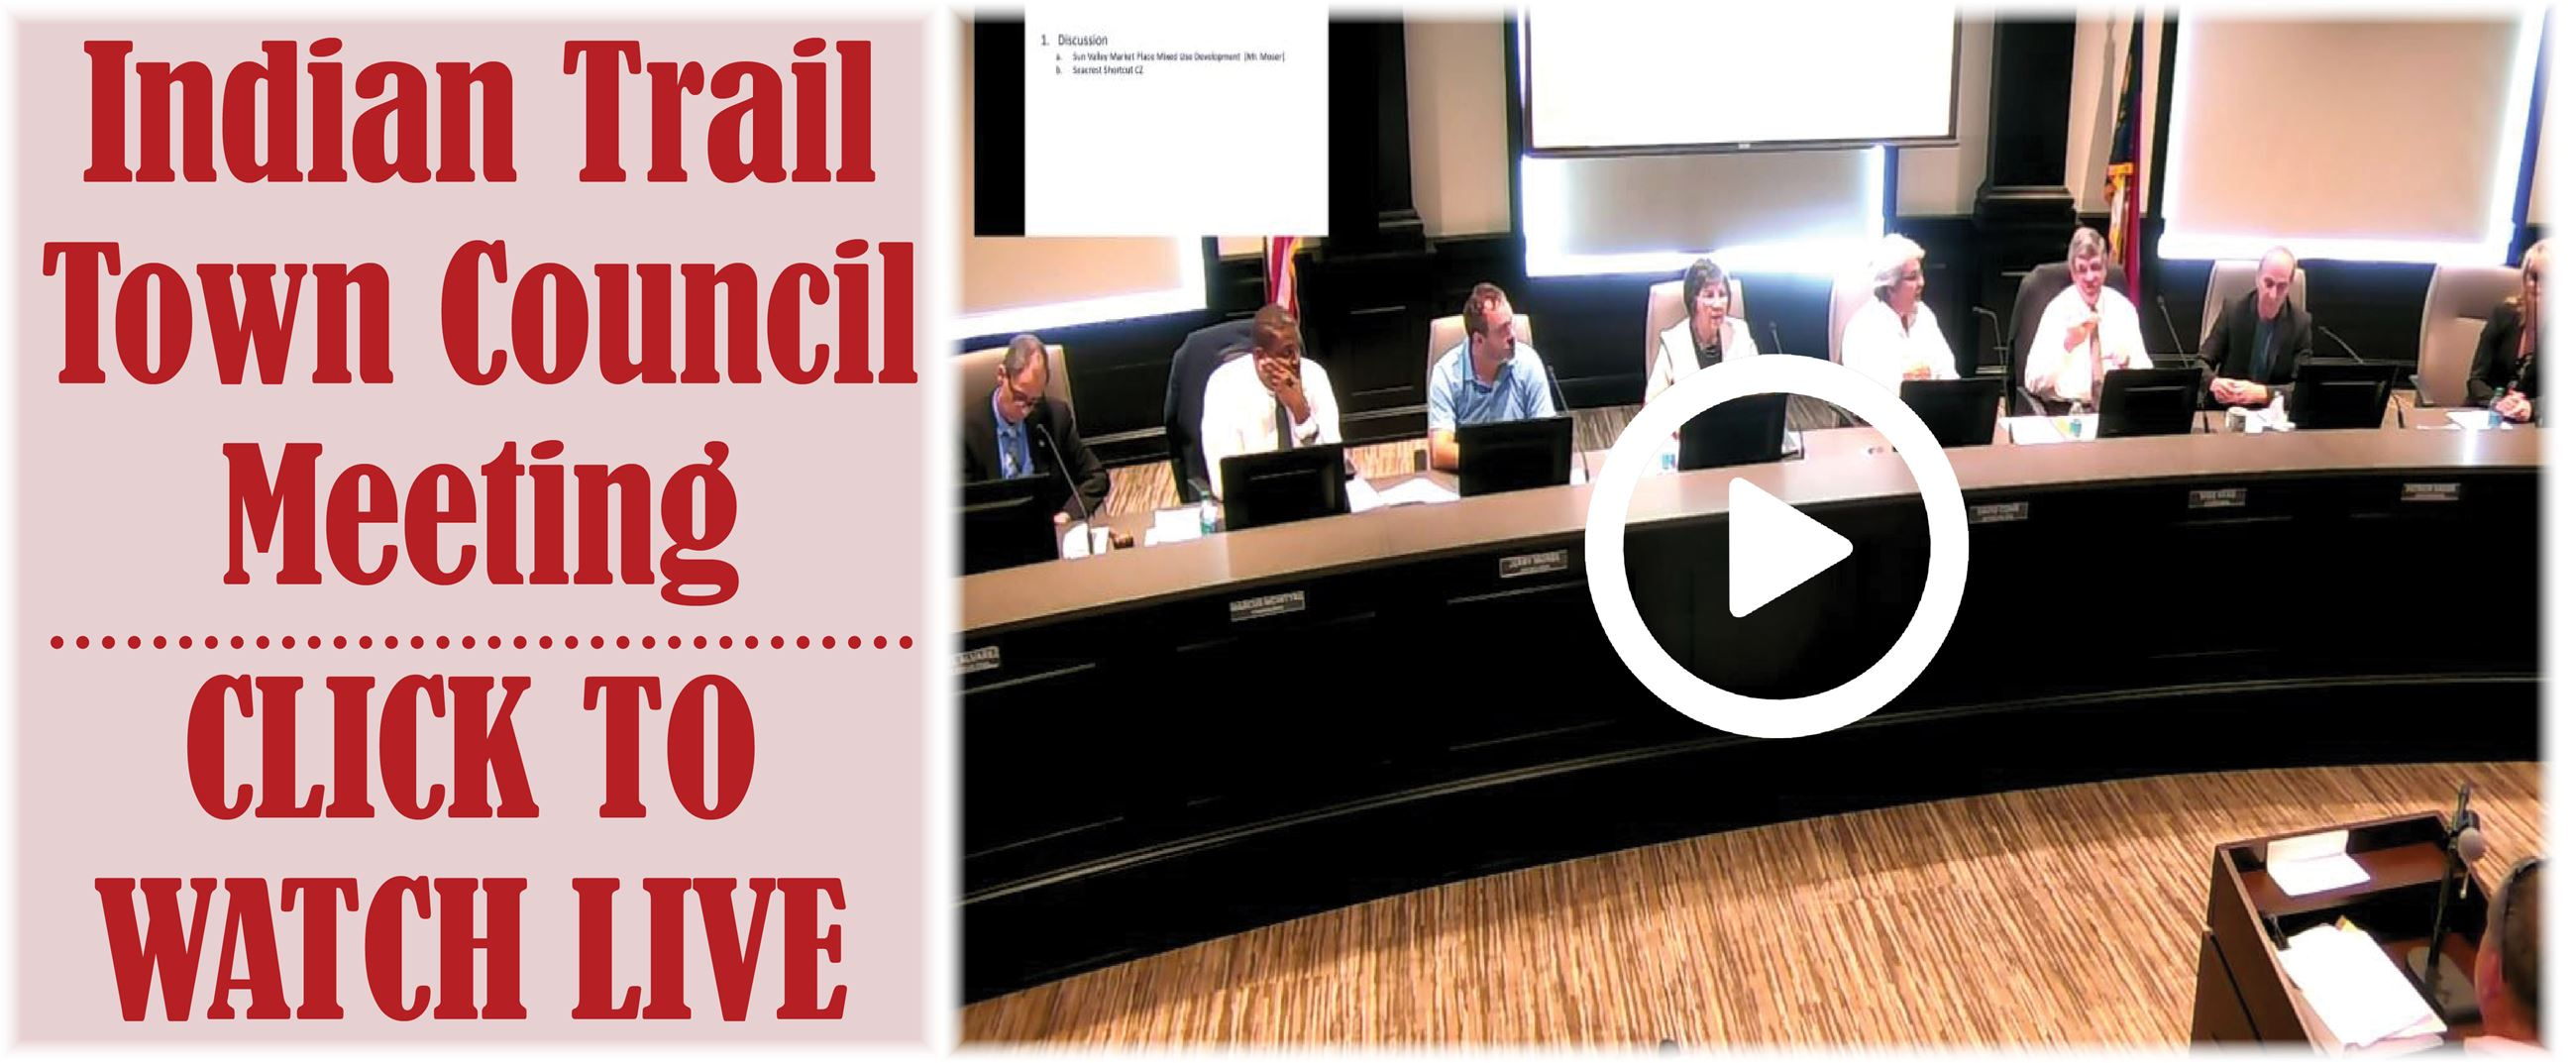 "An image of Indian Trail Town Council saying ""Indian Trail Town Council Meeting Click To Watch Li"